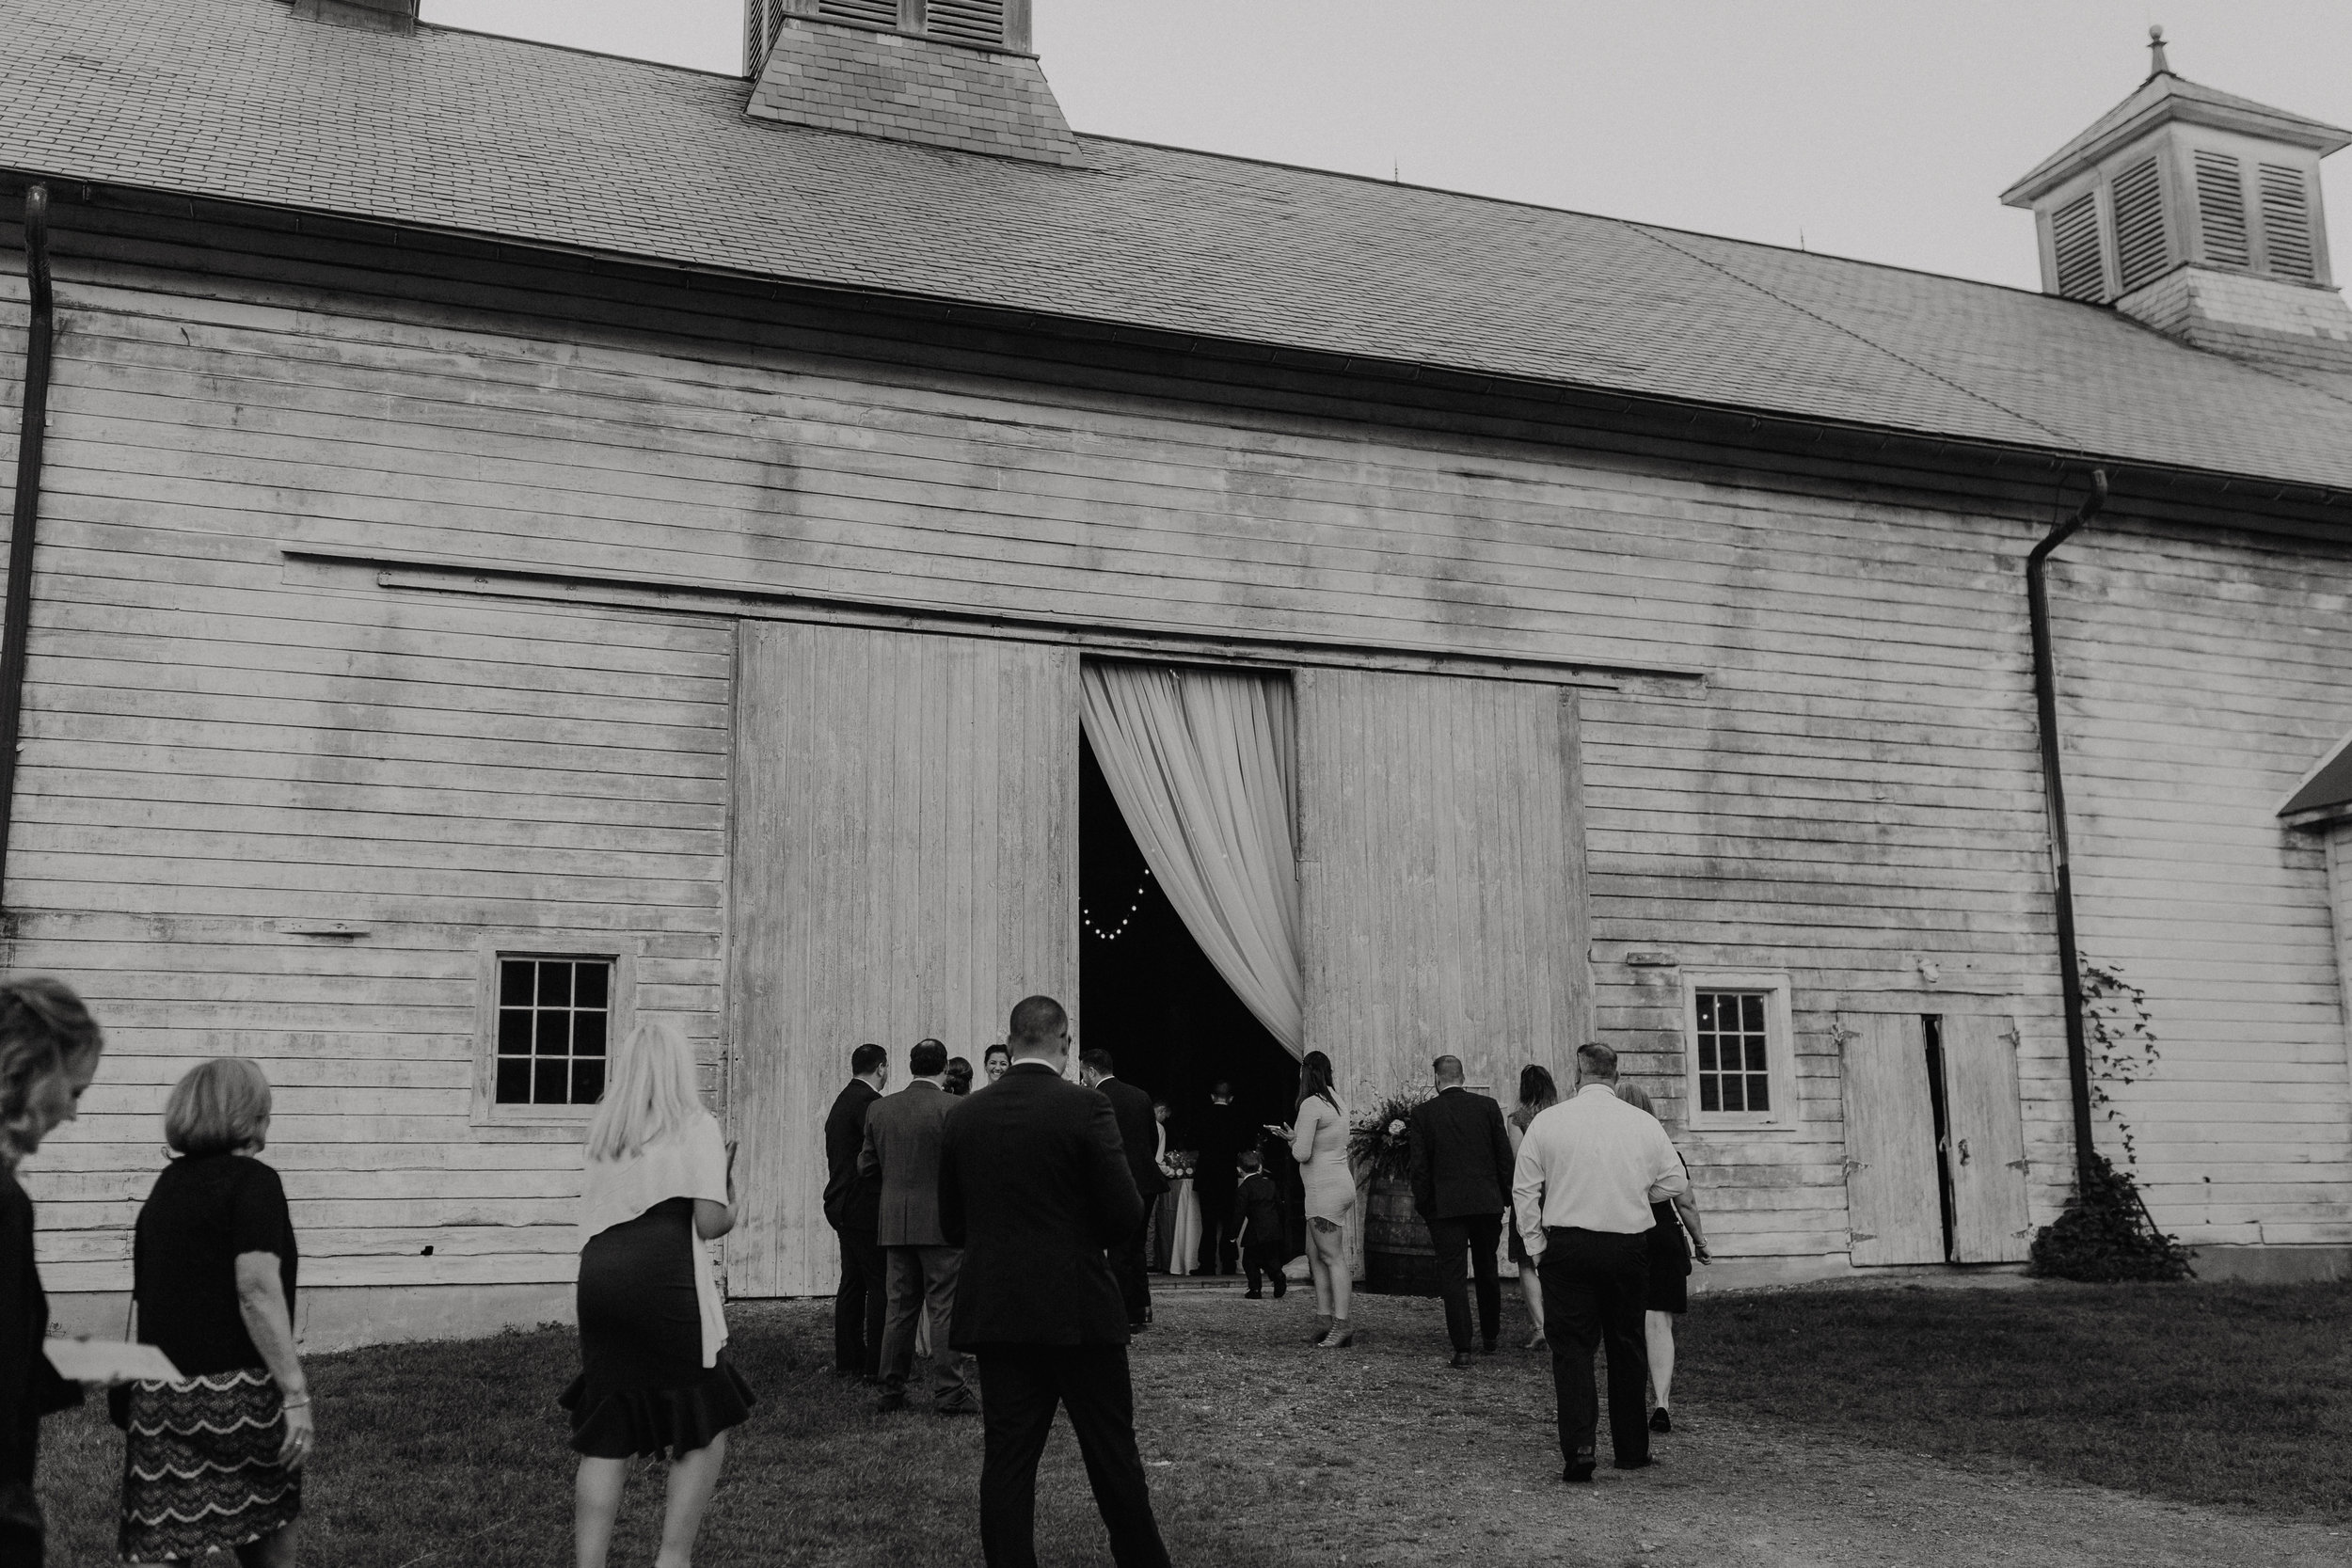 shaker_heritage_barn_wedding_037.jpg